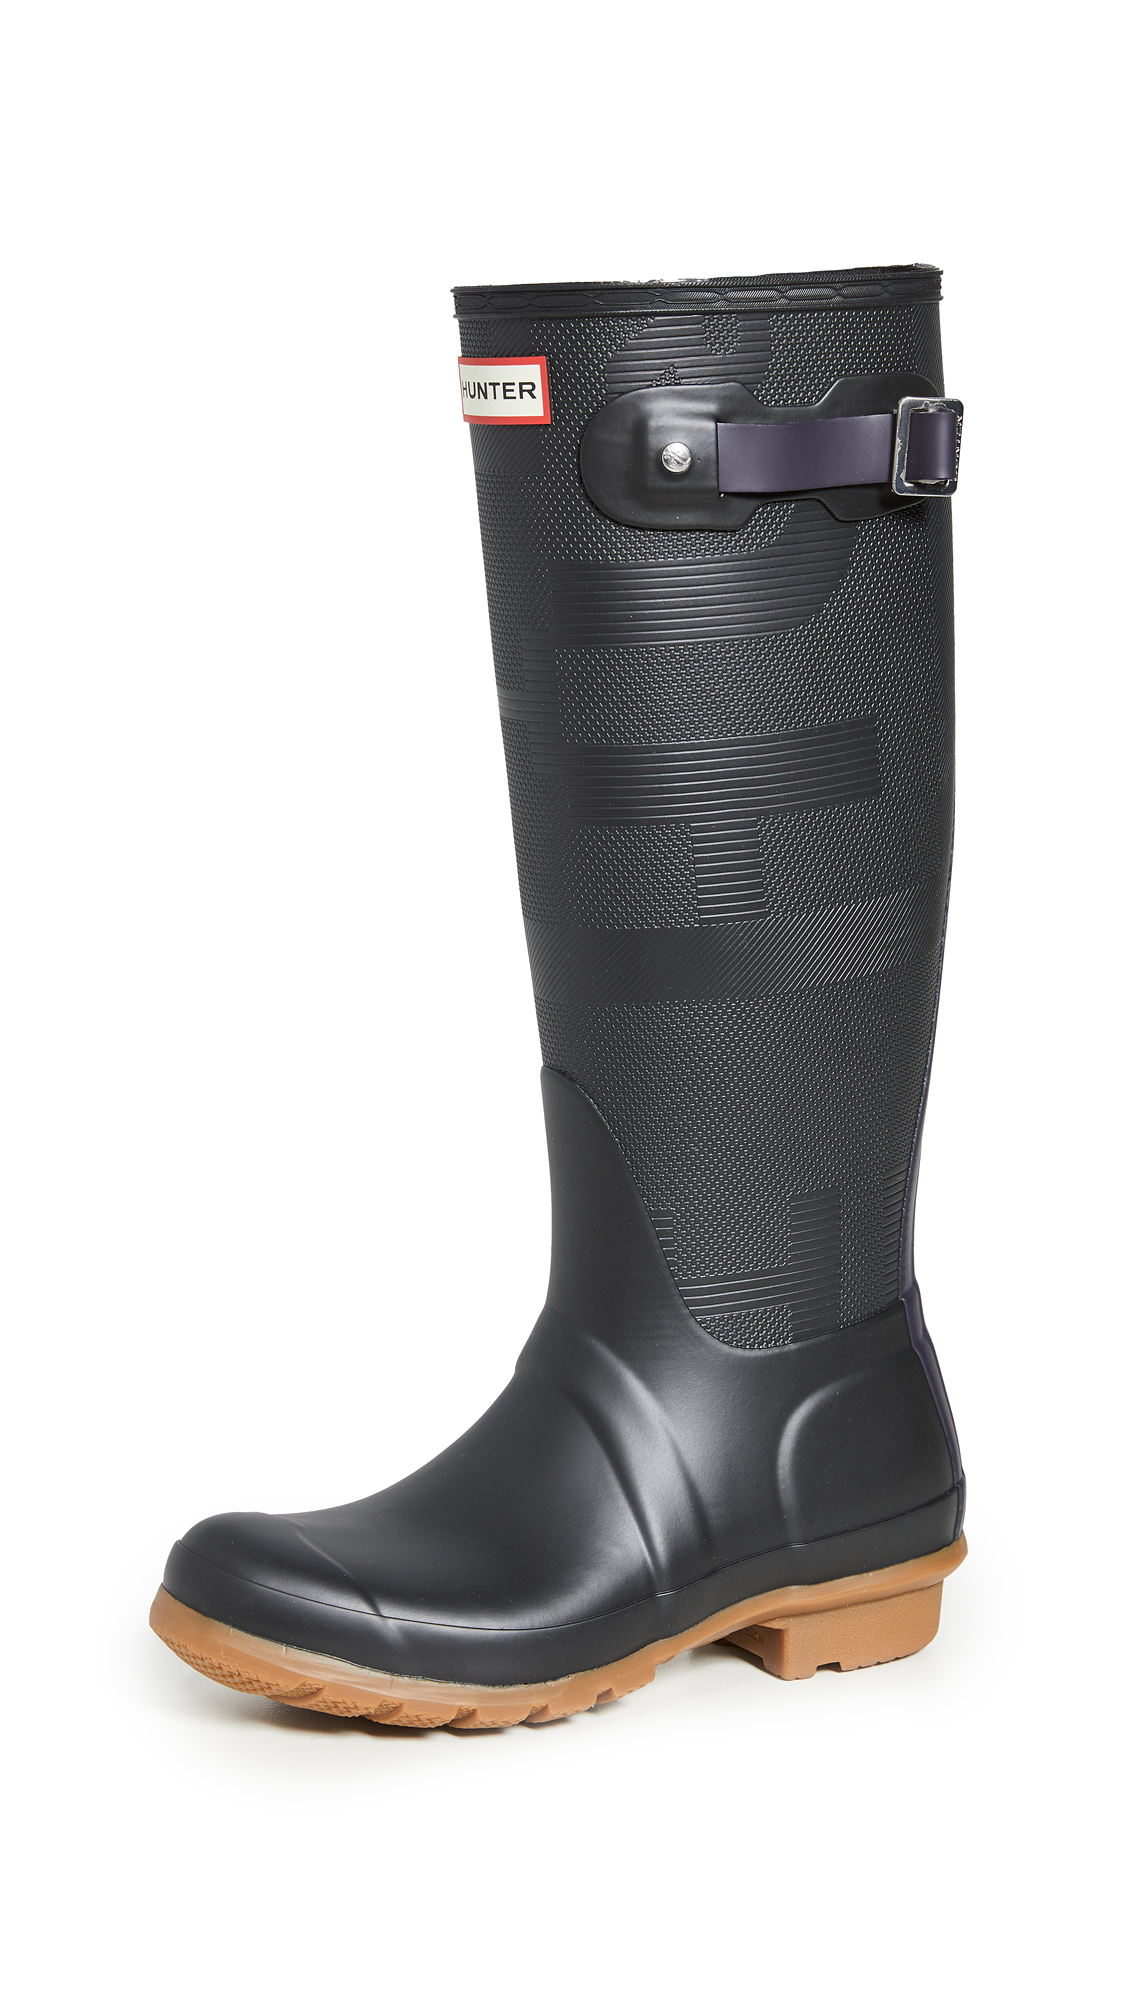 Hunter Boots Womens Original Tall Exploded Logo Texture Boots - 30% Off Sale